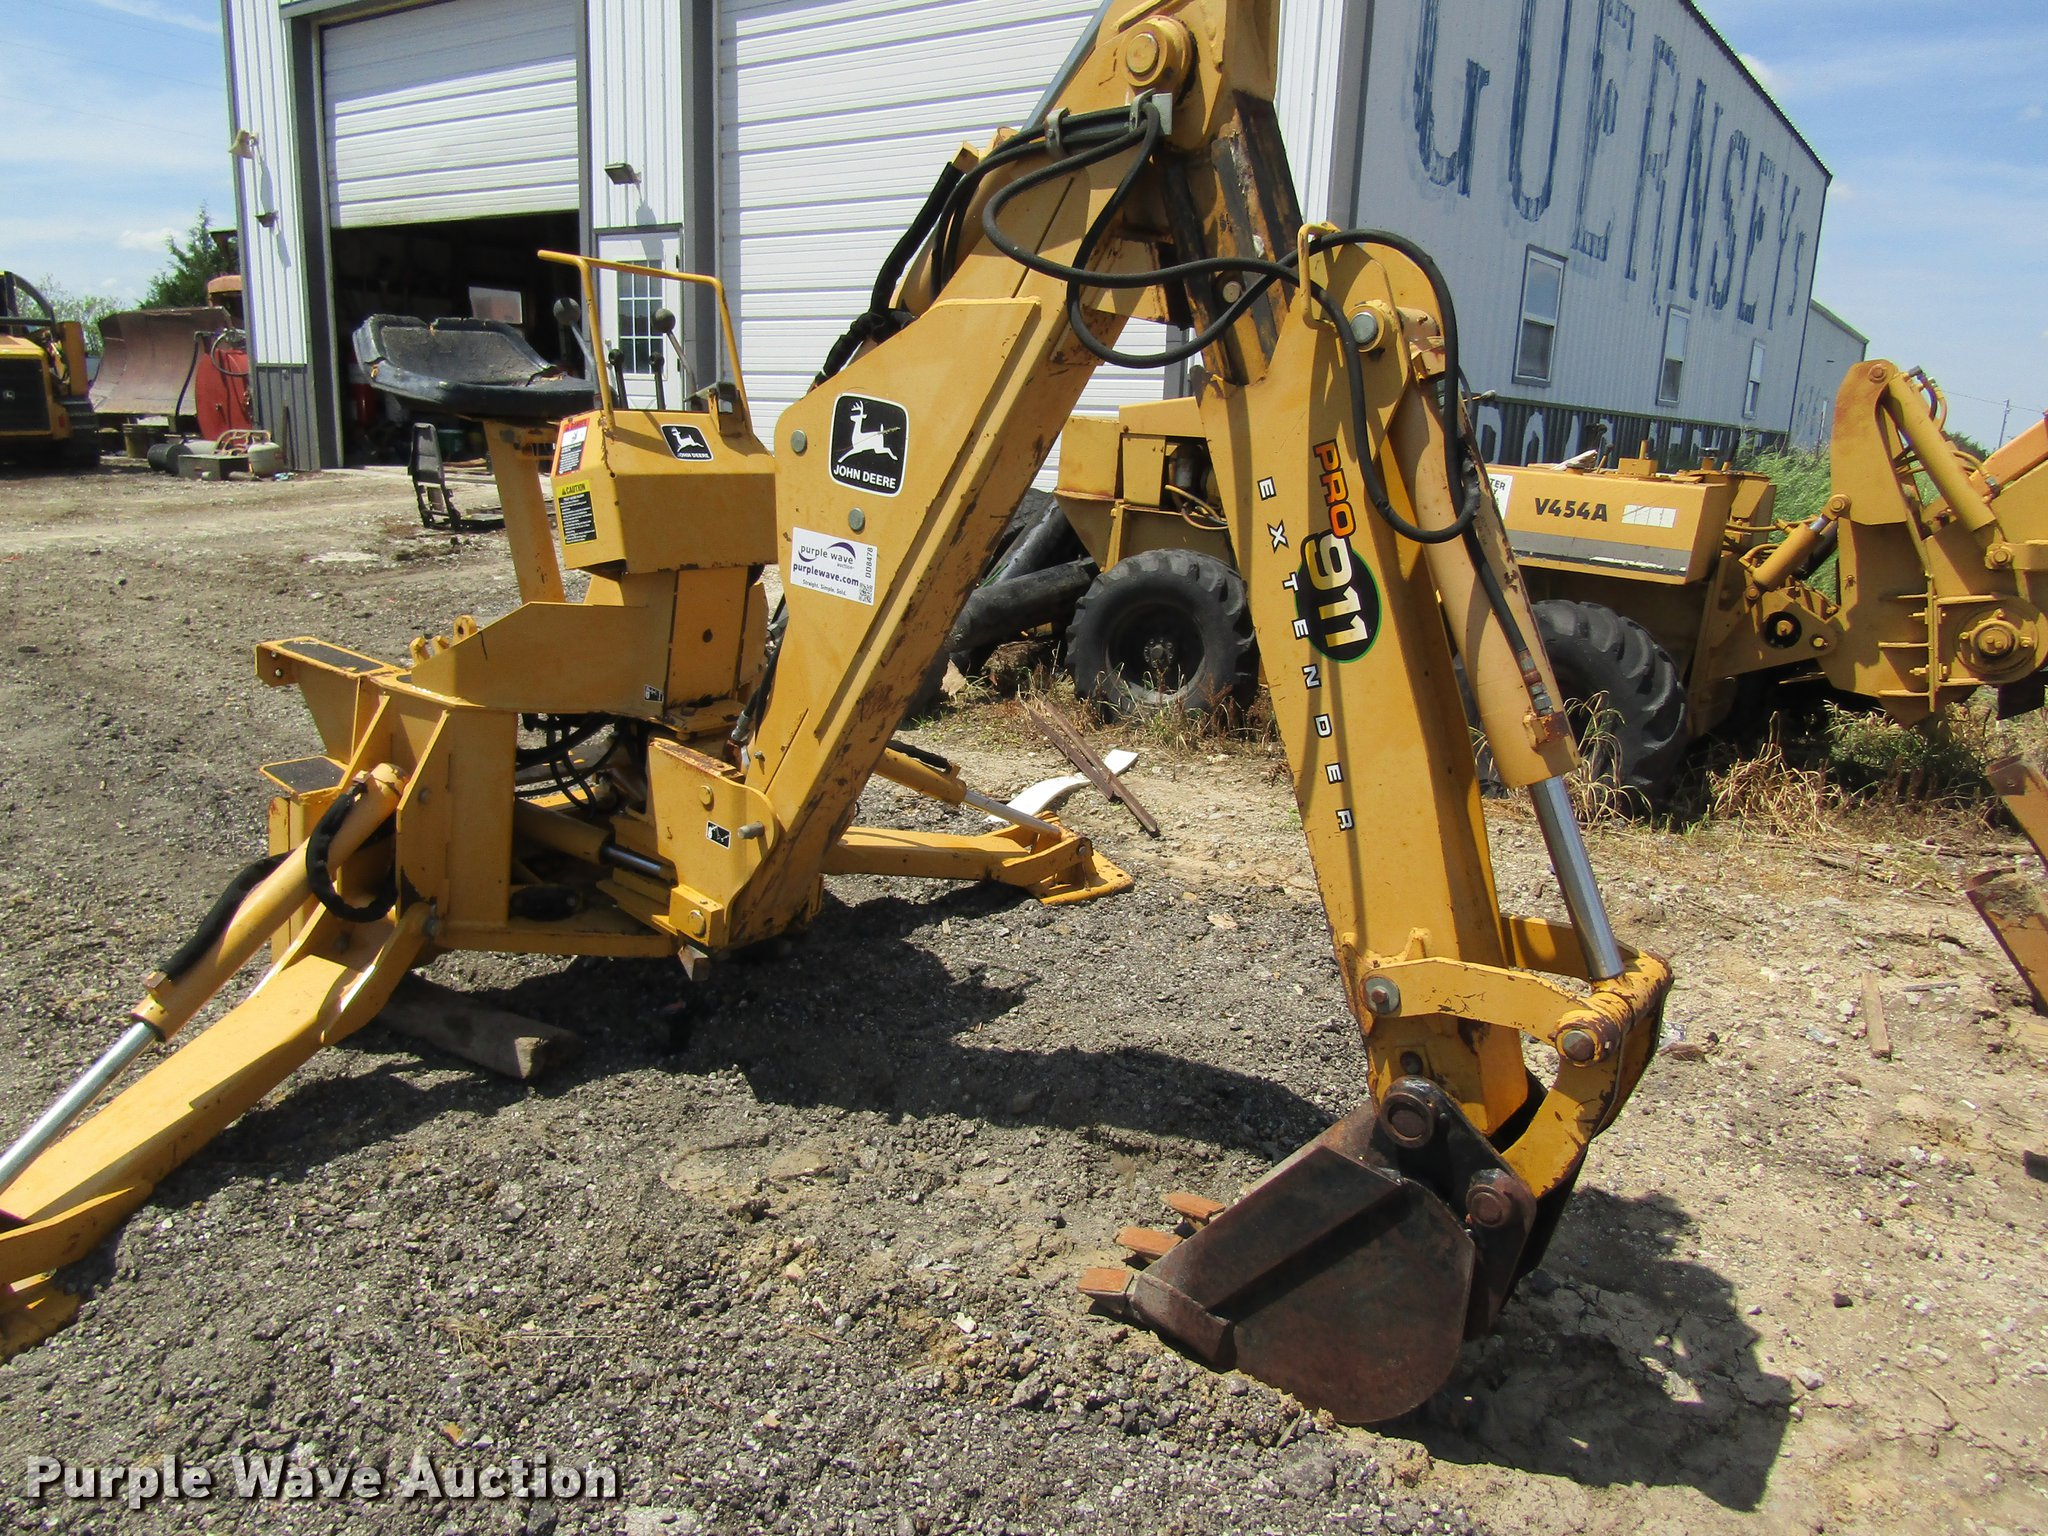 John Deere Backhoe Attachment >> John Deere 911 Extender Backhoe Attachment Item Dd8478 S